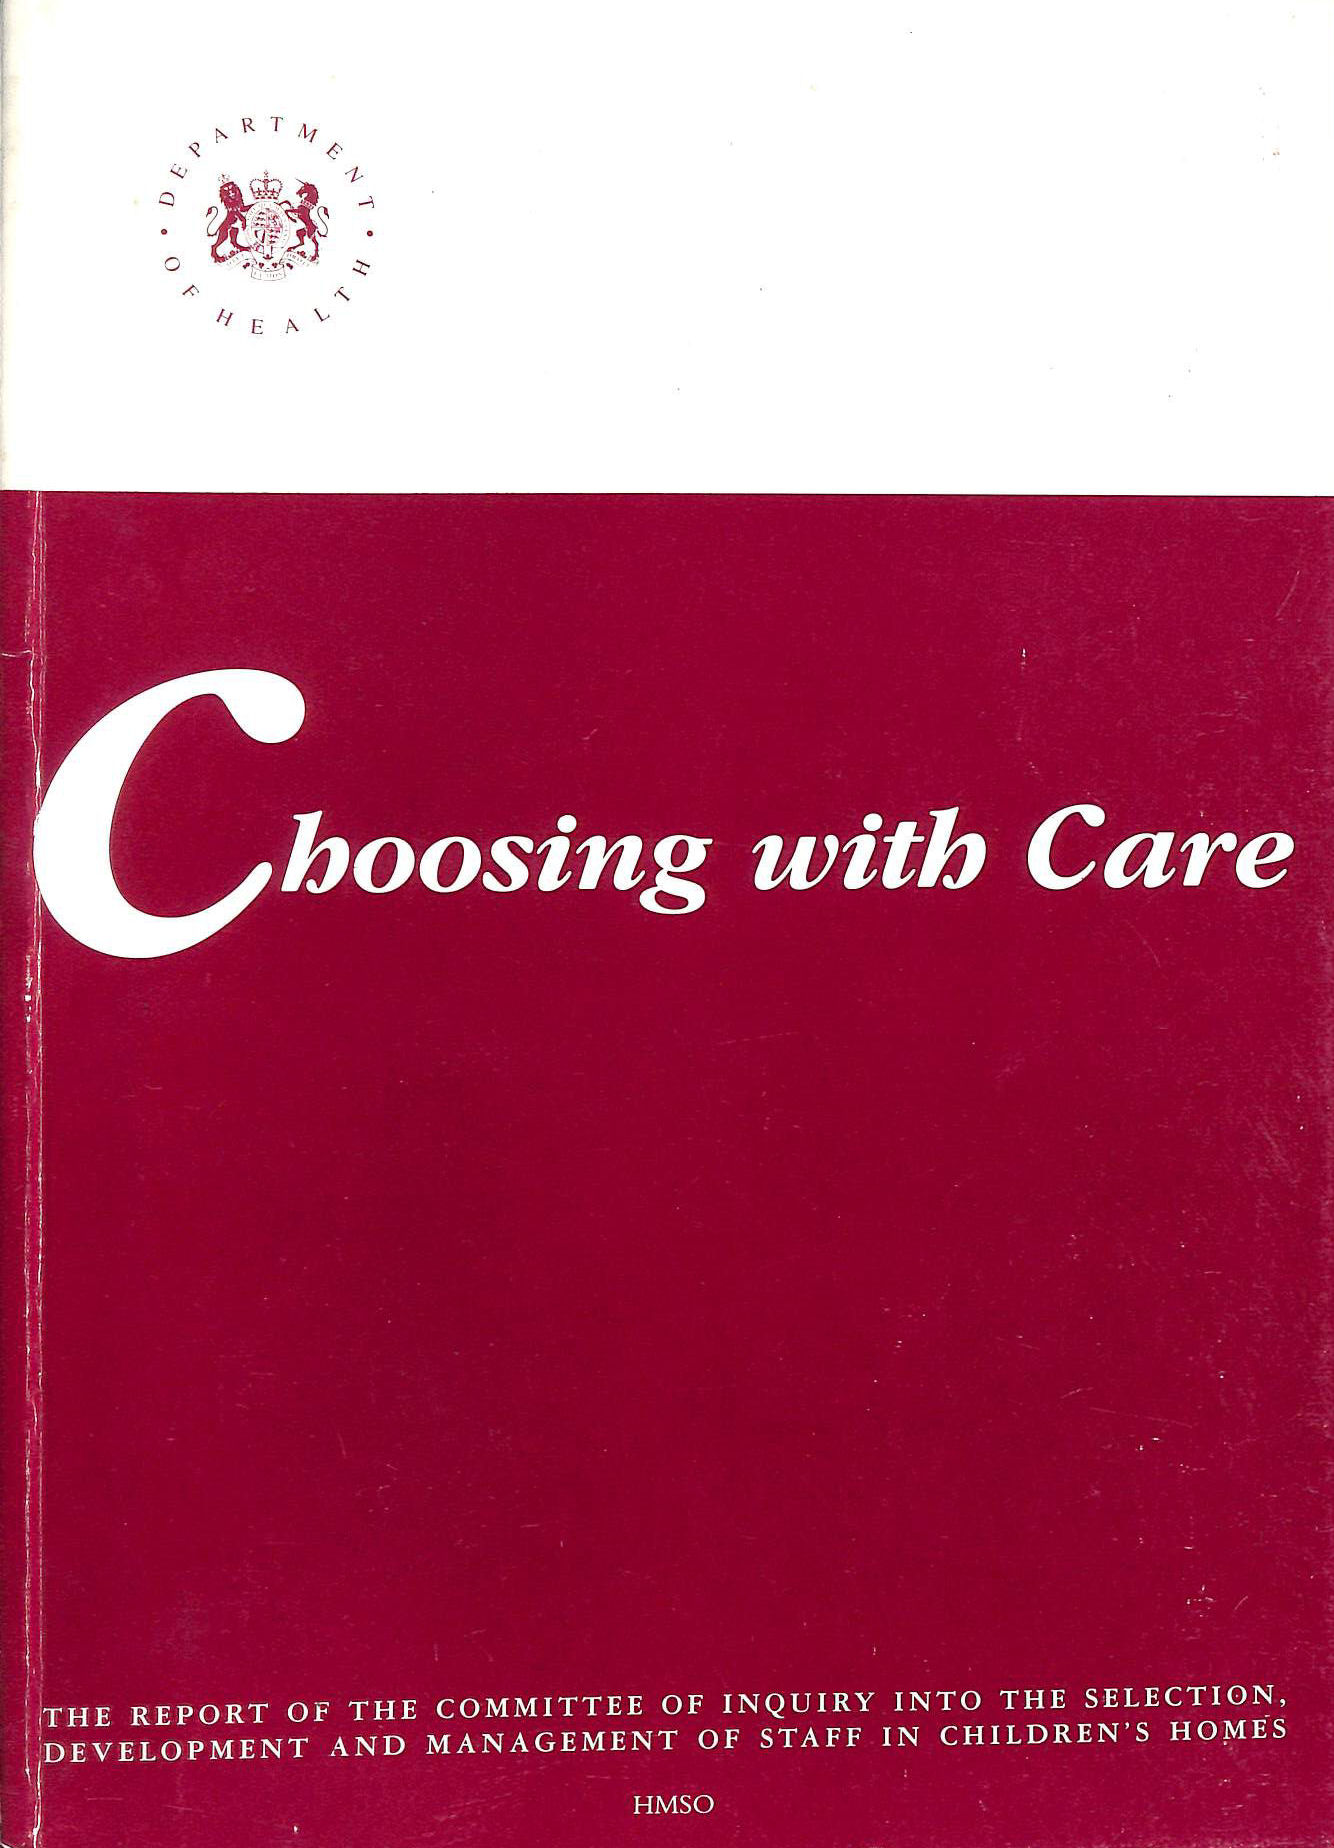 Image for Choosing with Care: Warner Report - The Report of the Committee of Inquiry into the Selection, Development and Management of Staff in Children's Homes